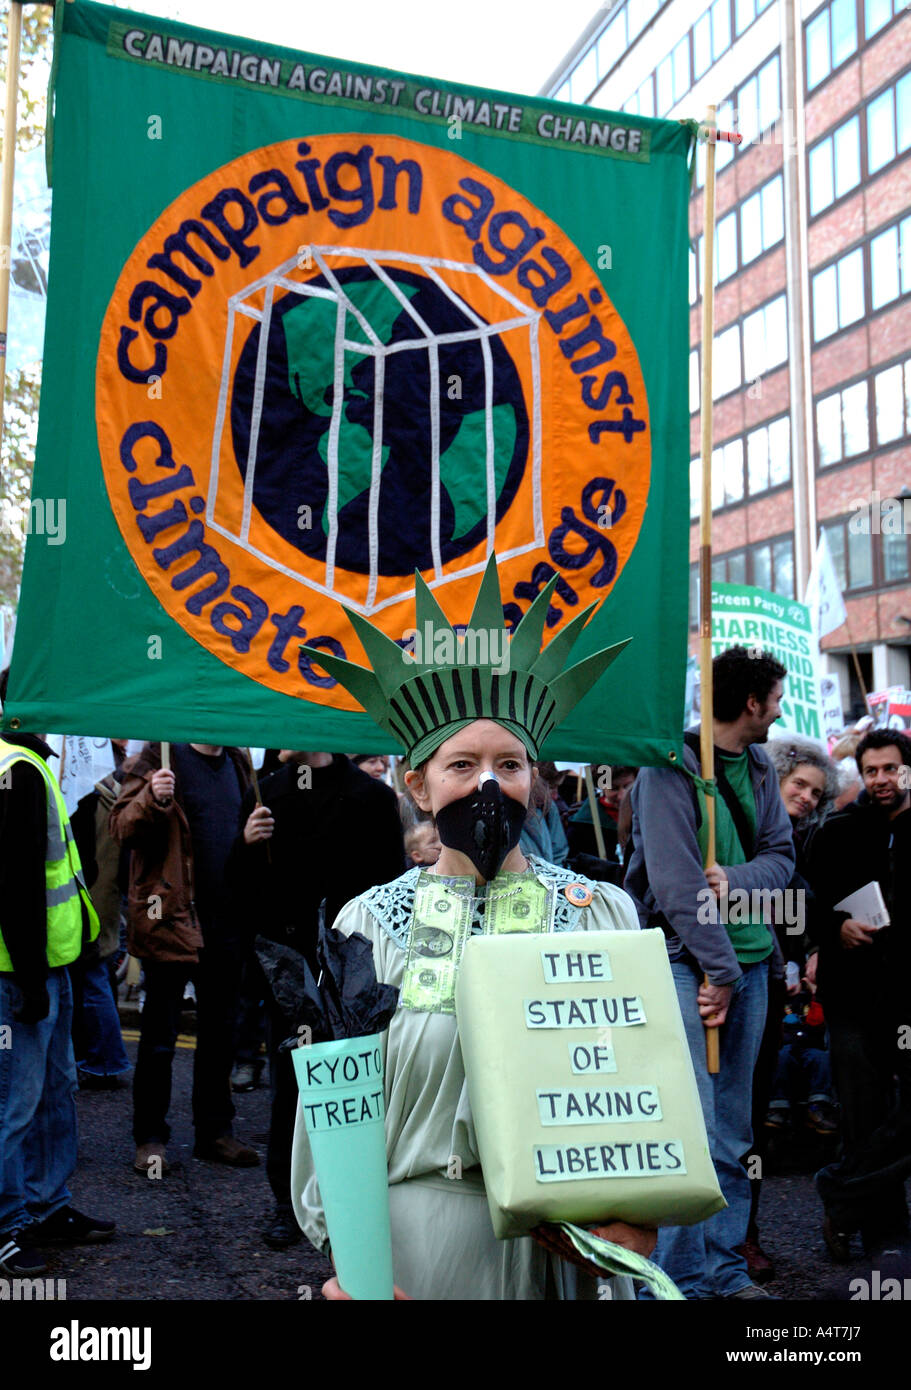 Woman dressed as Statue of Liberty at Climate Change Environmental protest through central London. - Stock Image